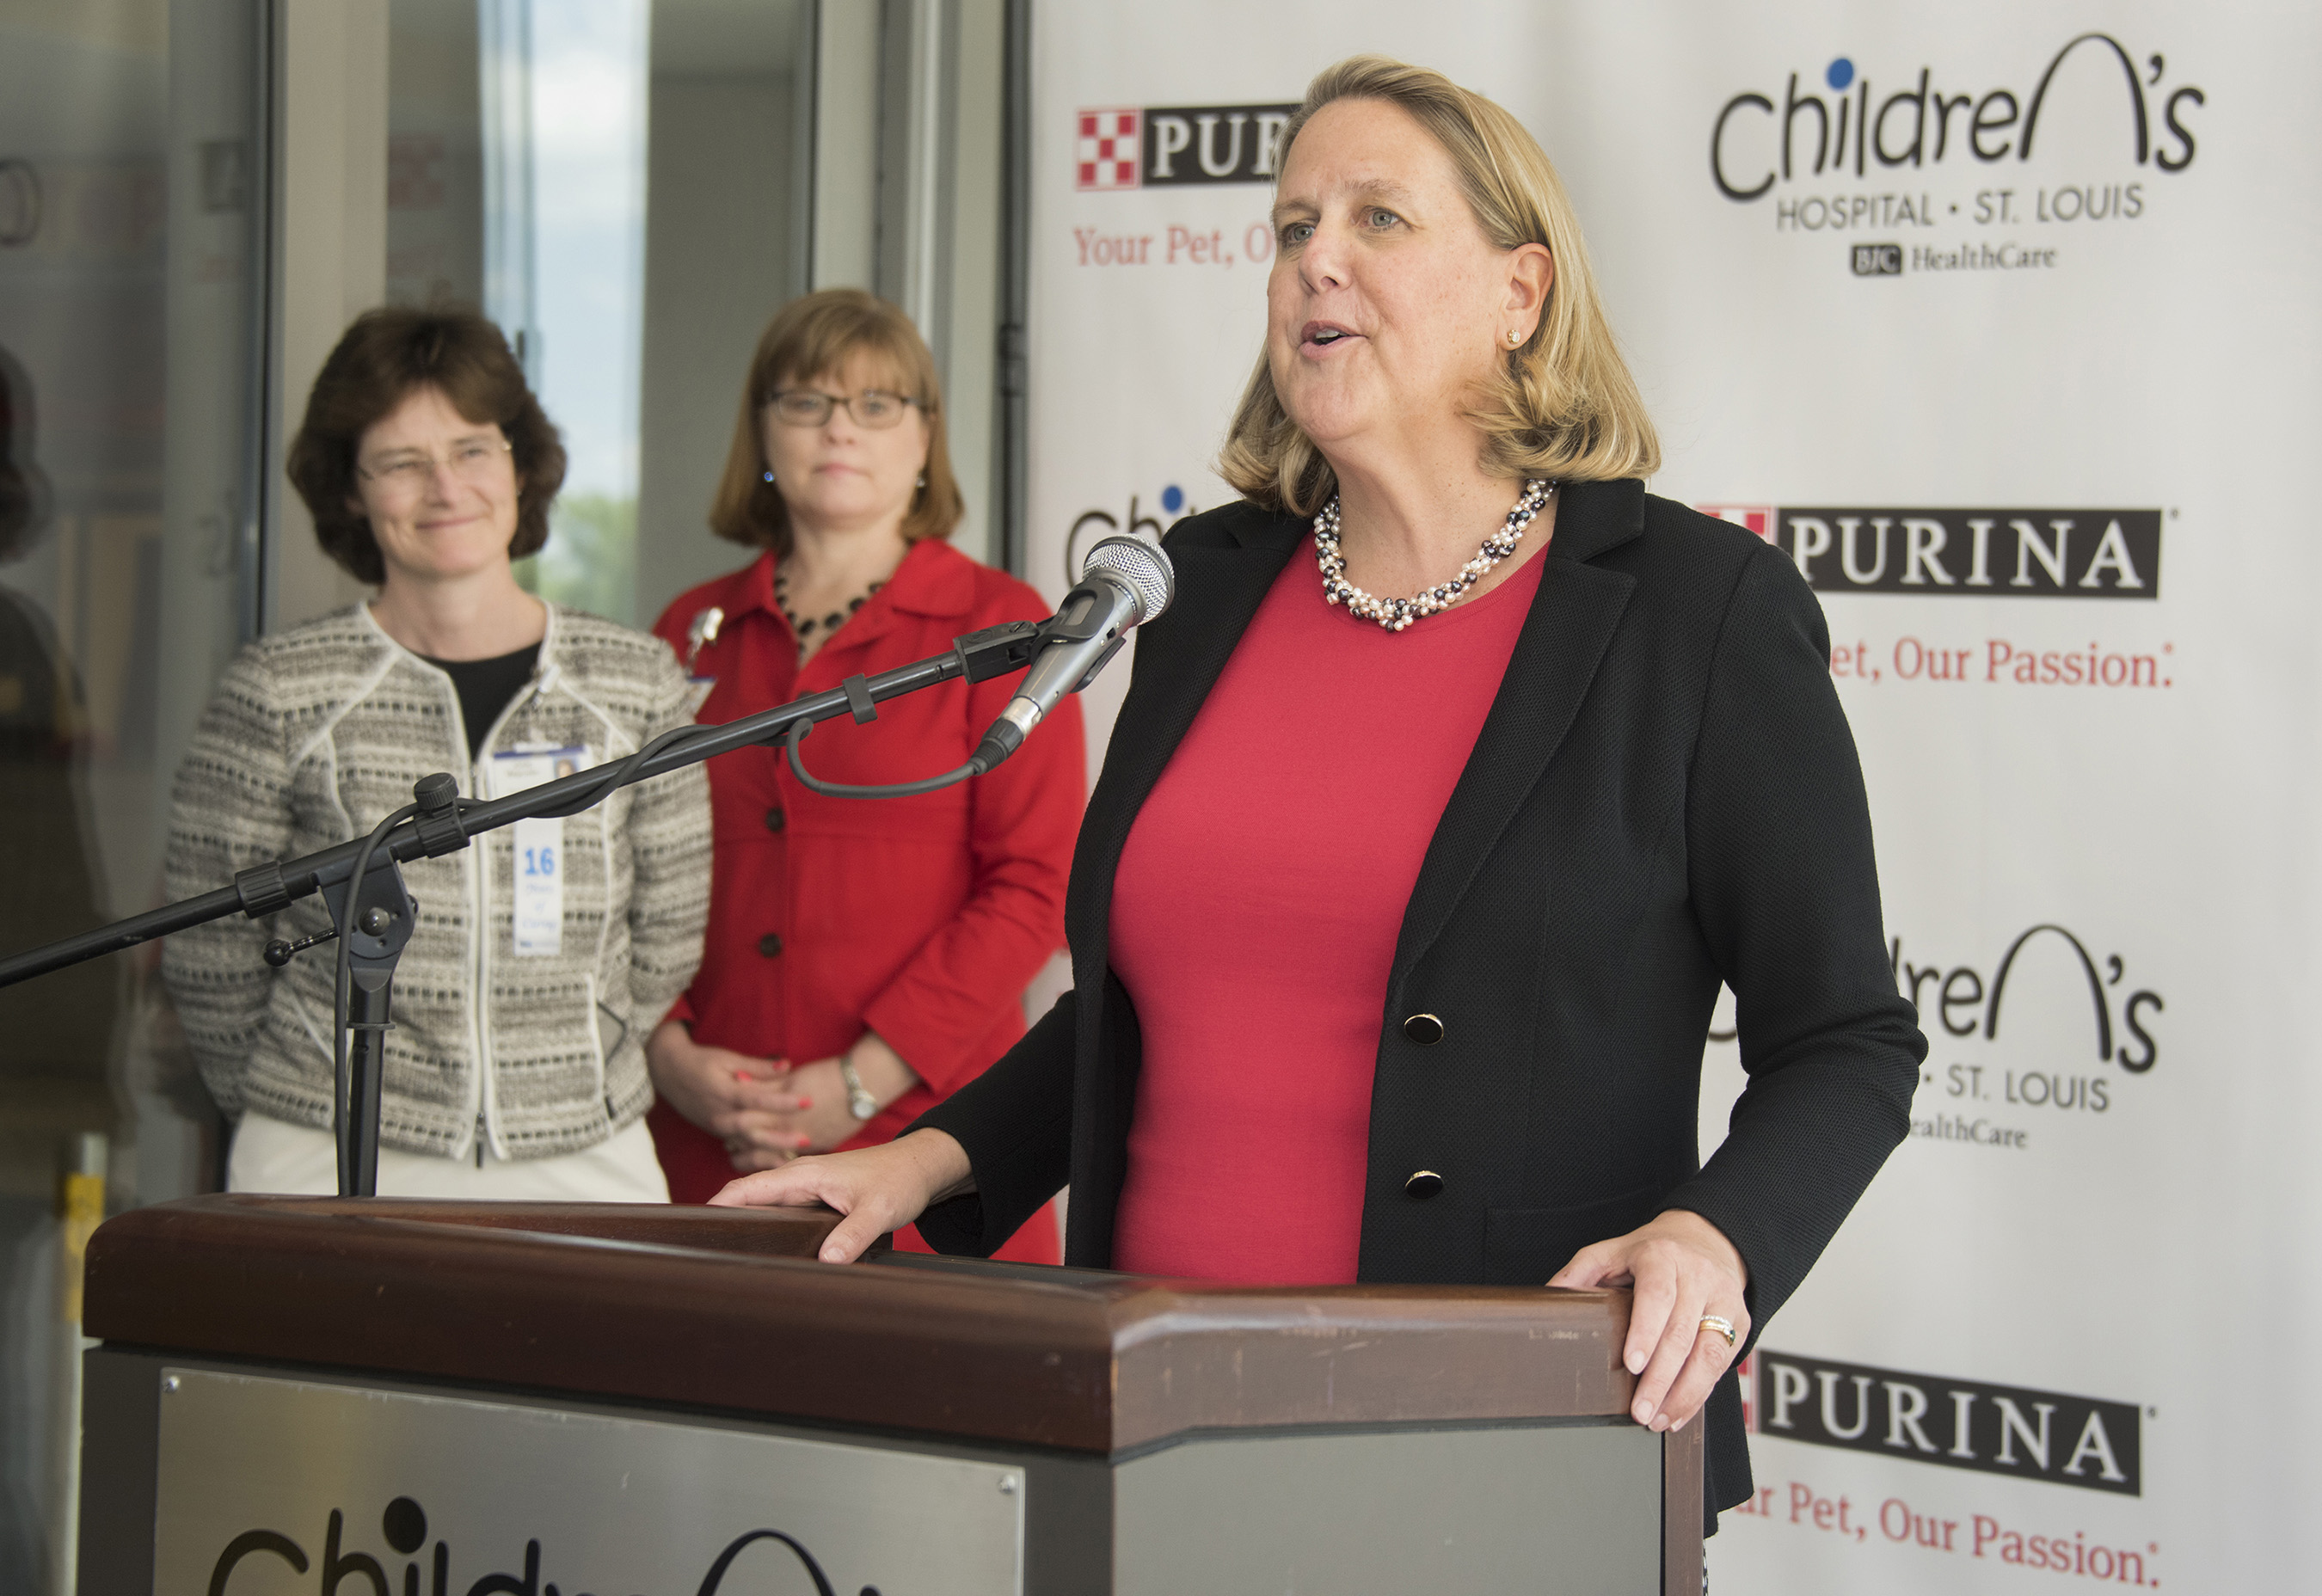 Purina President Nina Leigh Krueger discusses the partnership between Purina and the St. Louis Children's Hospital to create the fourth pet center at a pediatrics hospital in the world.